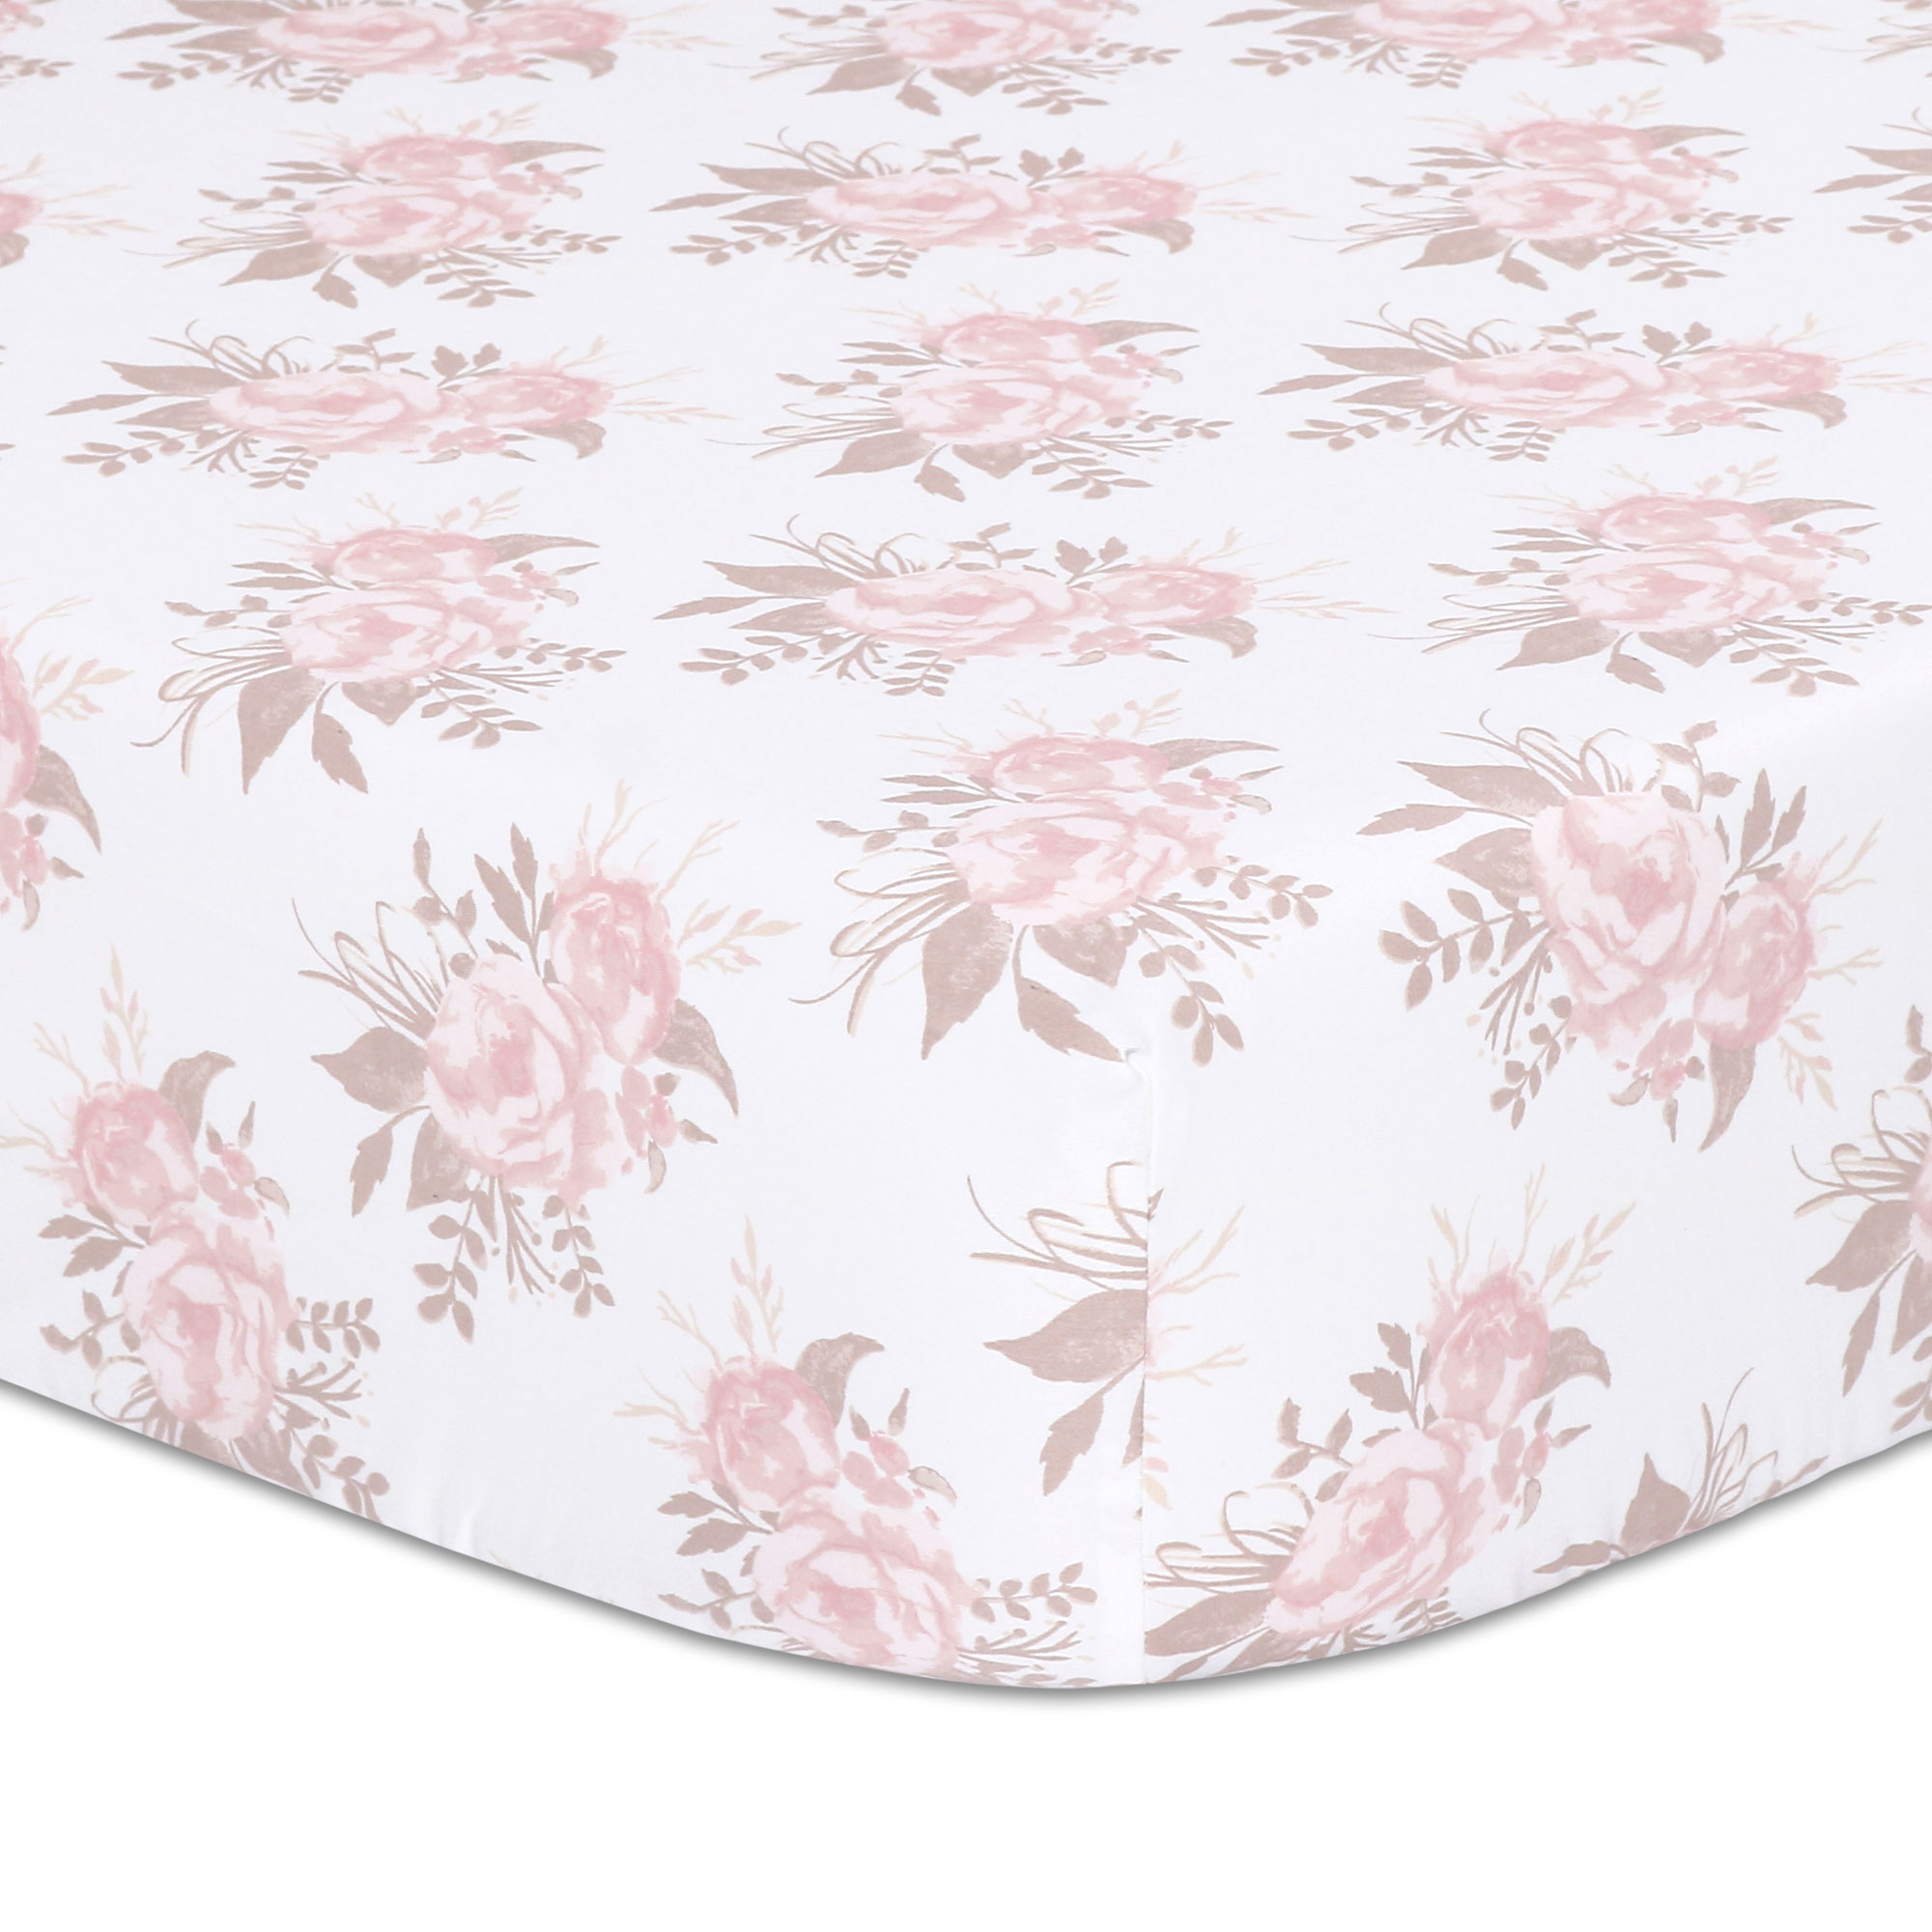 Baby Girl Fitted Crib Sheet - Pink Floral Design - Grace Collection by The Peanut Shell